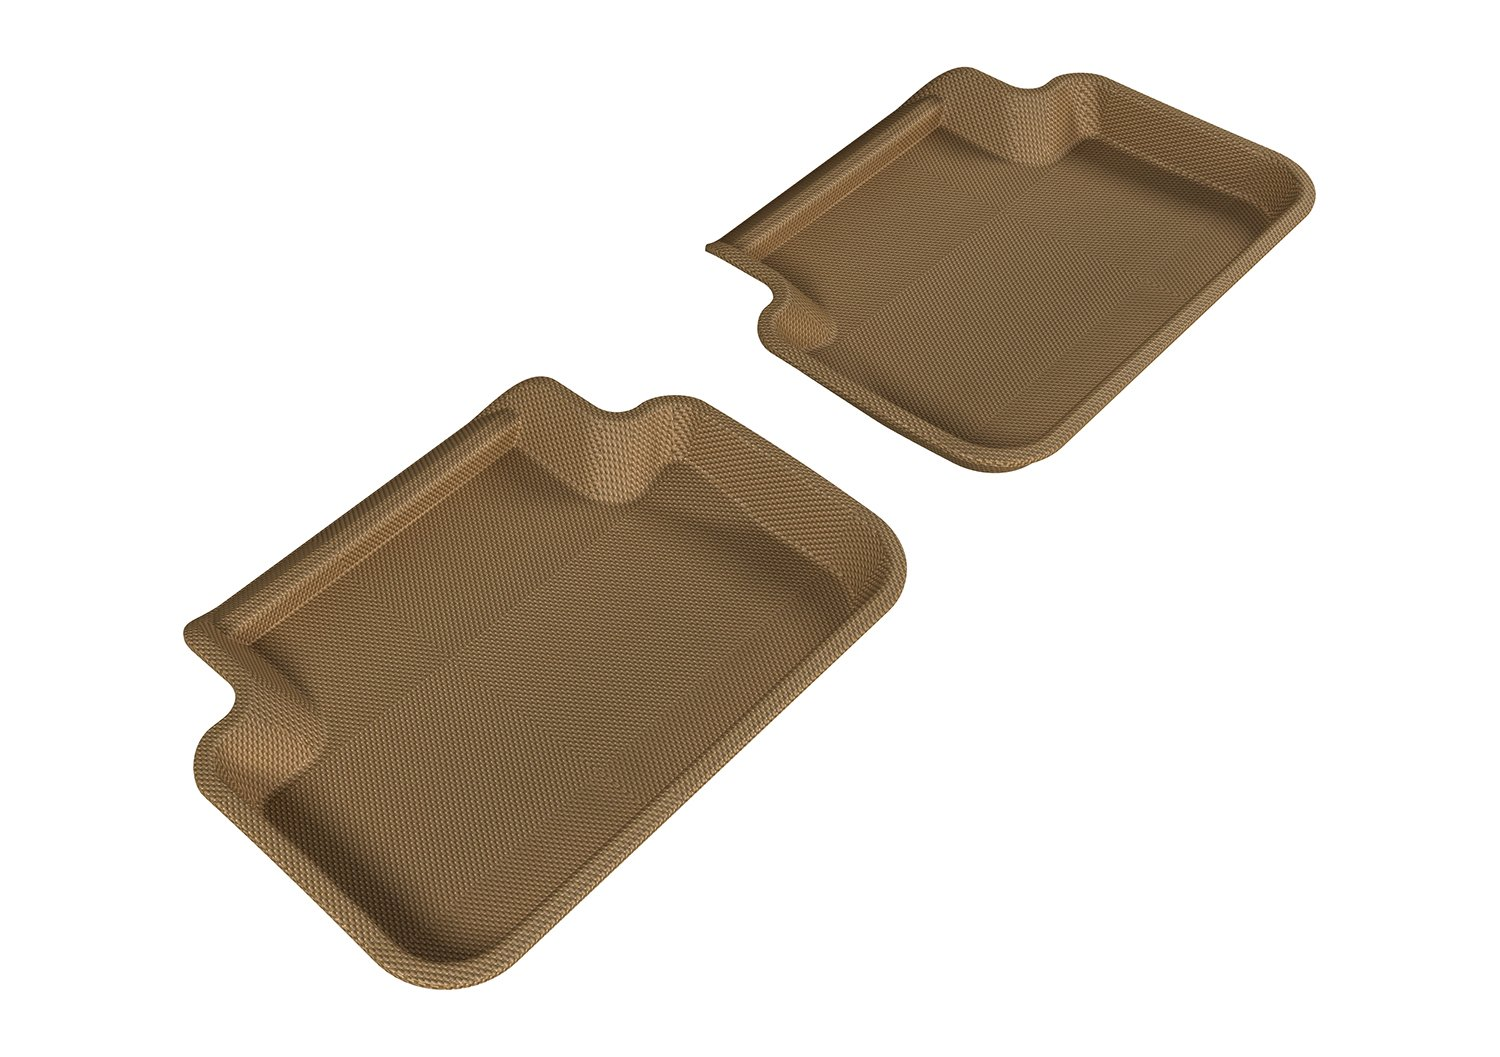 3D MAXpider Second Row Custom Fit All-Weather Floor Mat for Select Audi A4//S4//RS4 Models Tan Kagu Rubber L1AD02721502